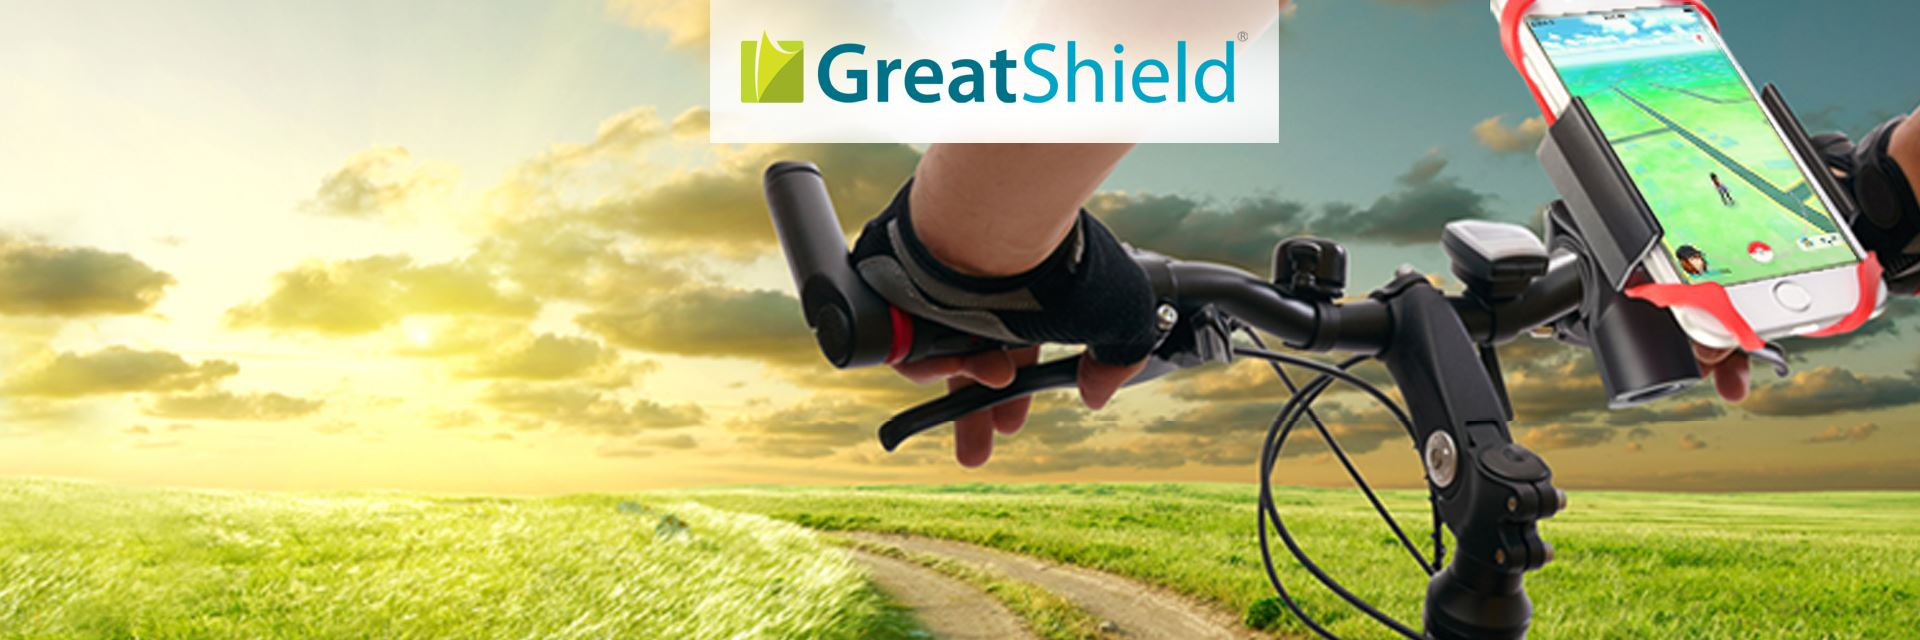 GreatShield